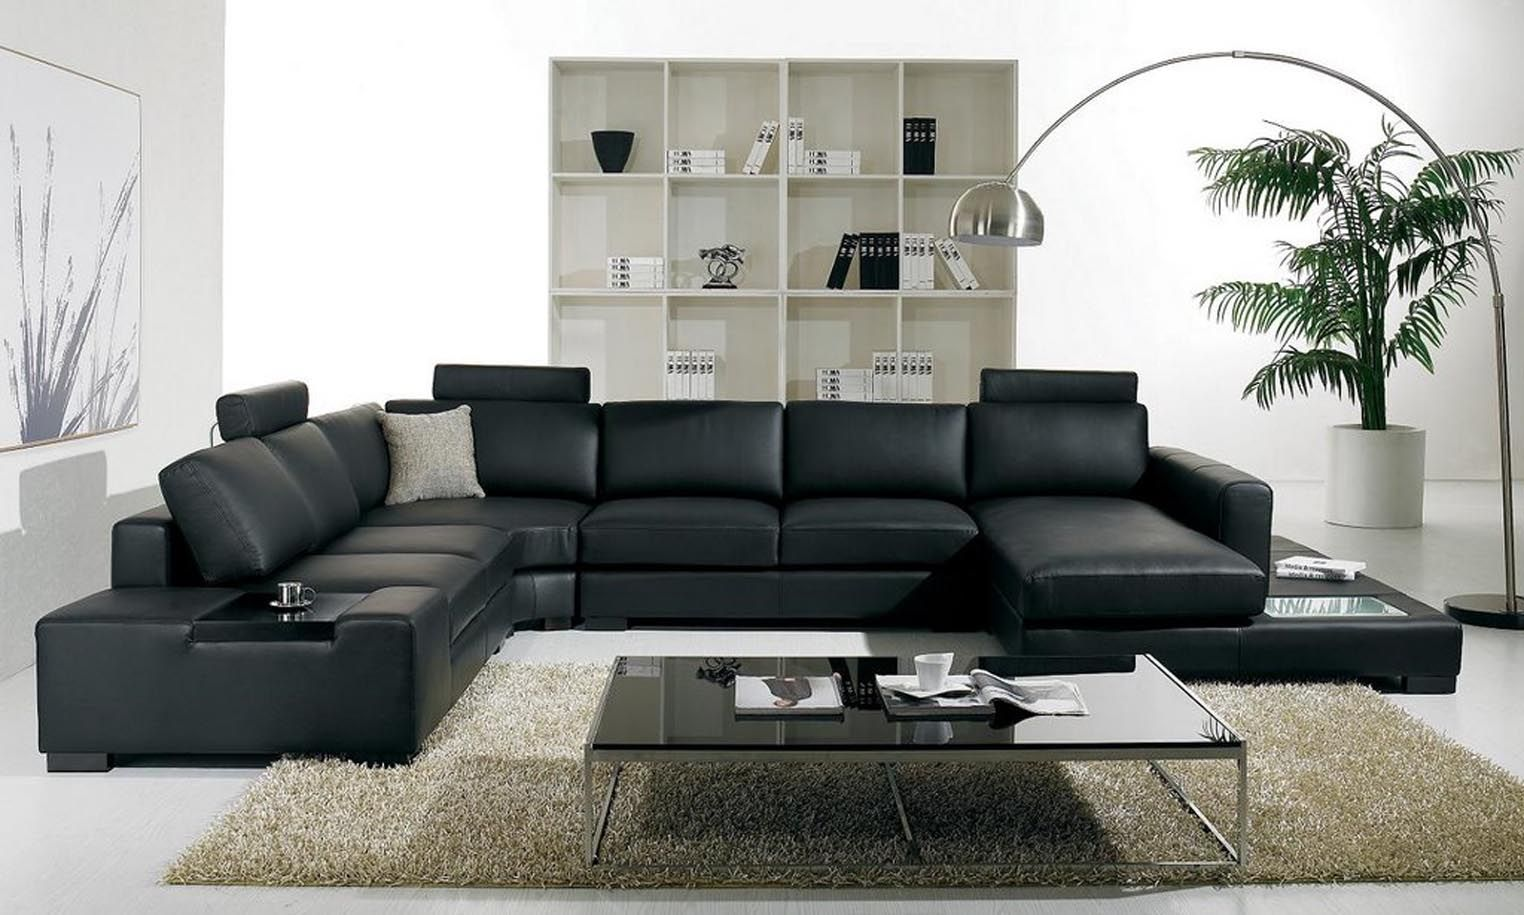 comfortable leather couch oversized leather comfortable black leather sectional sofa the versatility and allure of leather seating